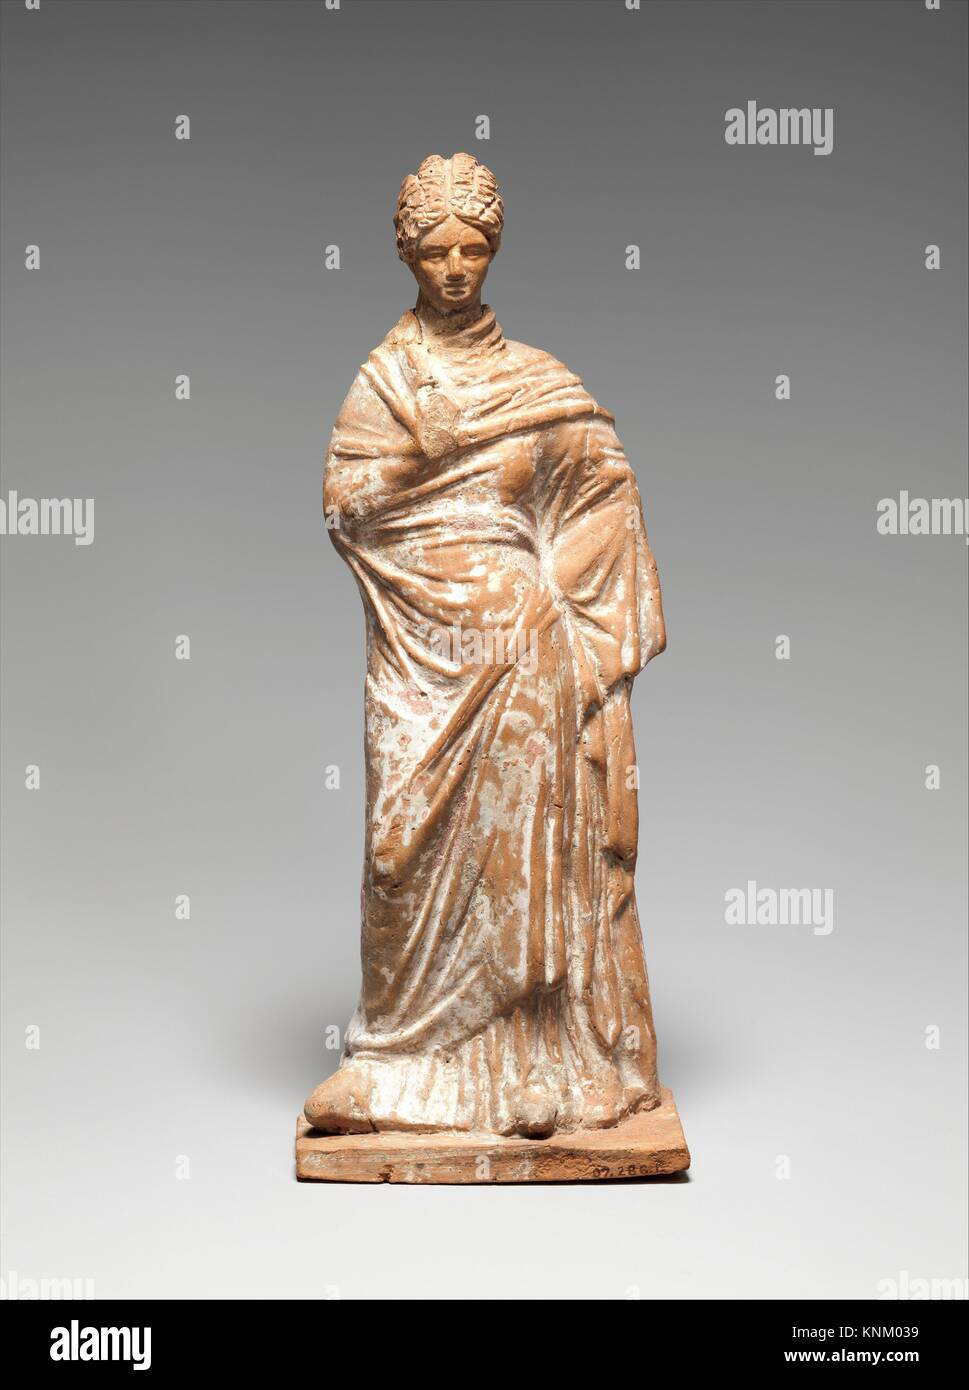 Terracotta statuette of a standing woman. Period: Hellenistic; Date: late 4th-early 3rd century B.C; Culture: Greek, - Stock Image